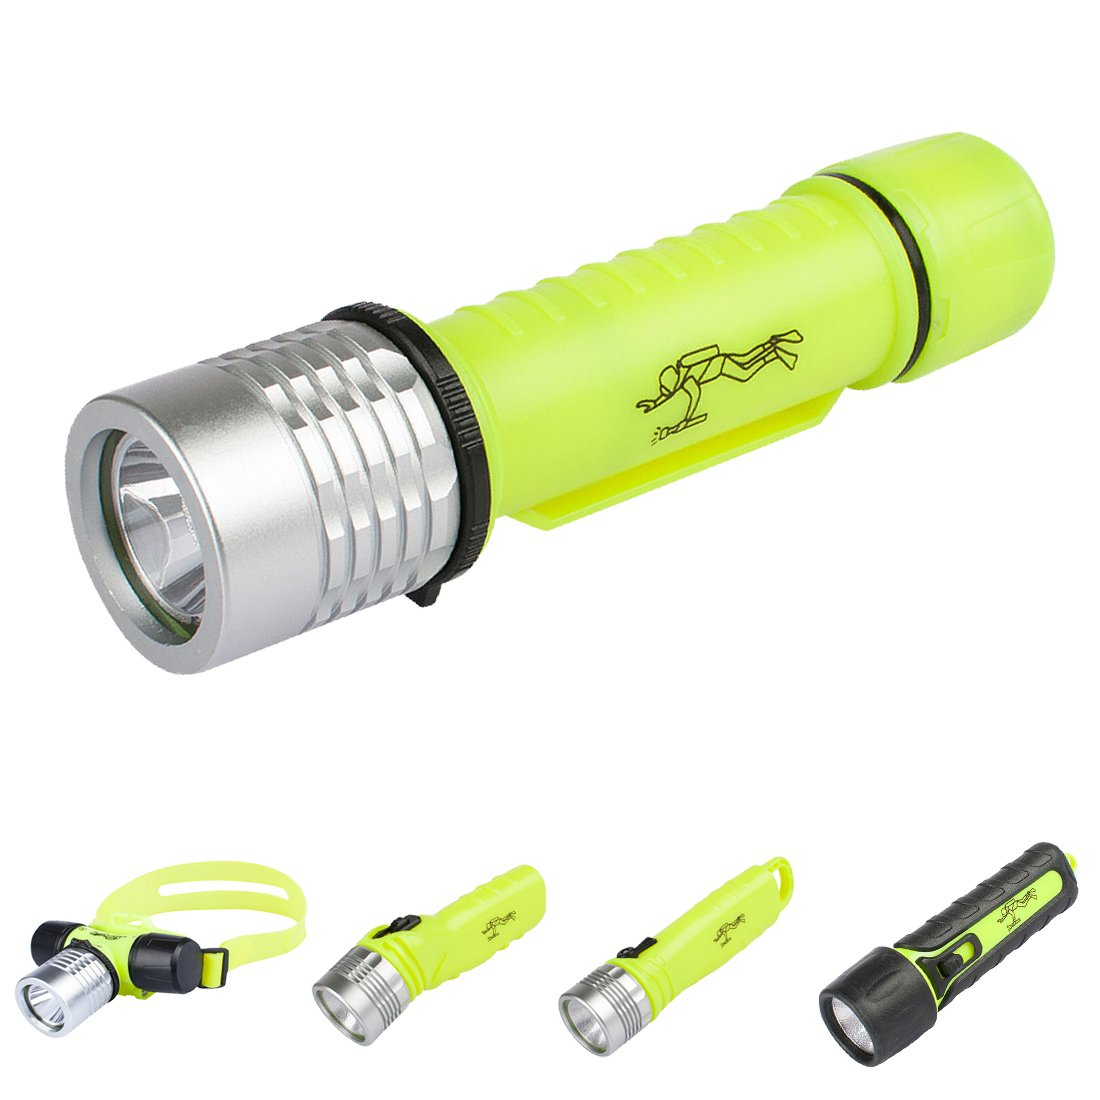 Three trees Underwater Diving Flashlight,3W 110 Lumens Waterproof LED Light,Slide Switch Safety Waterroof Underwater Buckle Flashlight,For Scuba Diving Outdoor Under Water Sports